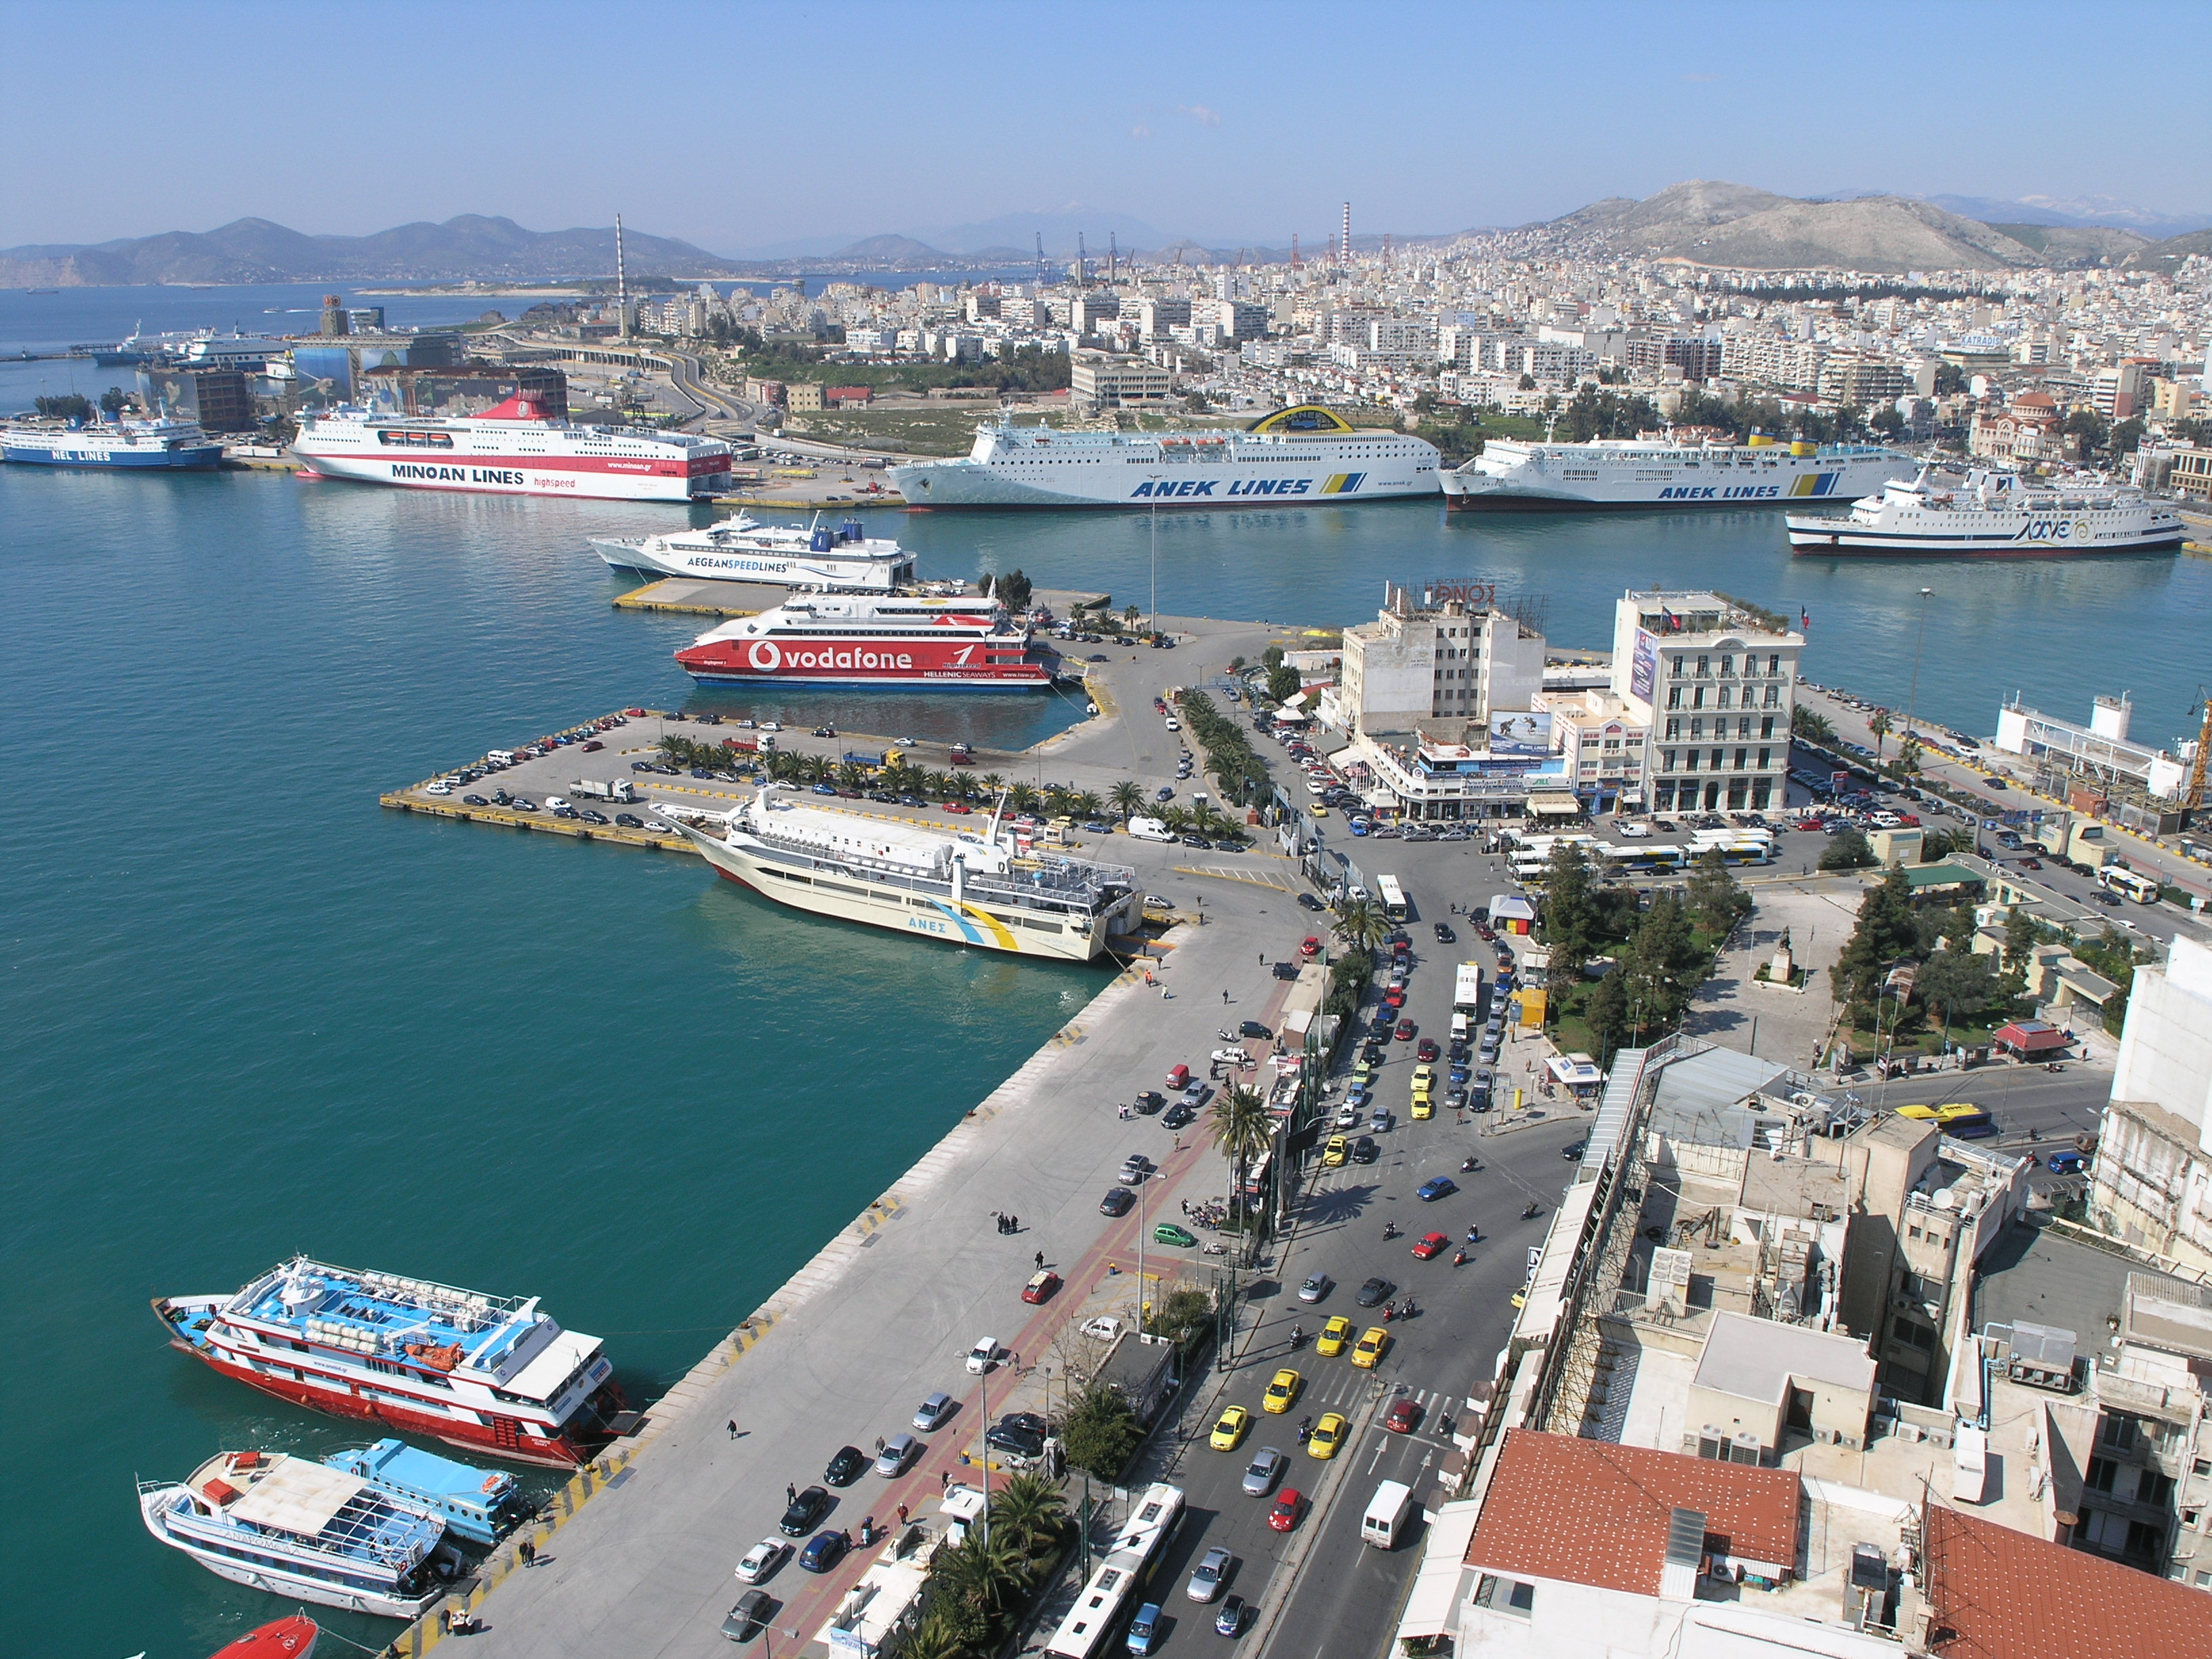 http://upload.wikimedia.org/wikipedia/commons/f/fb/Port_of_Piraeus.jpg